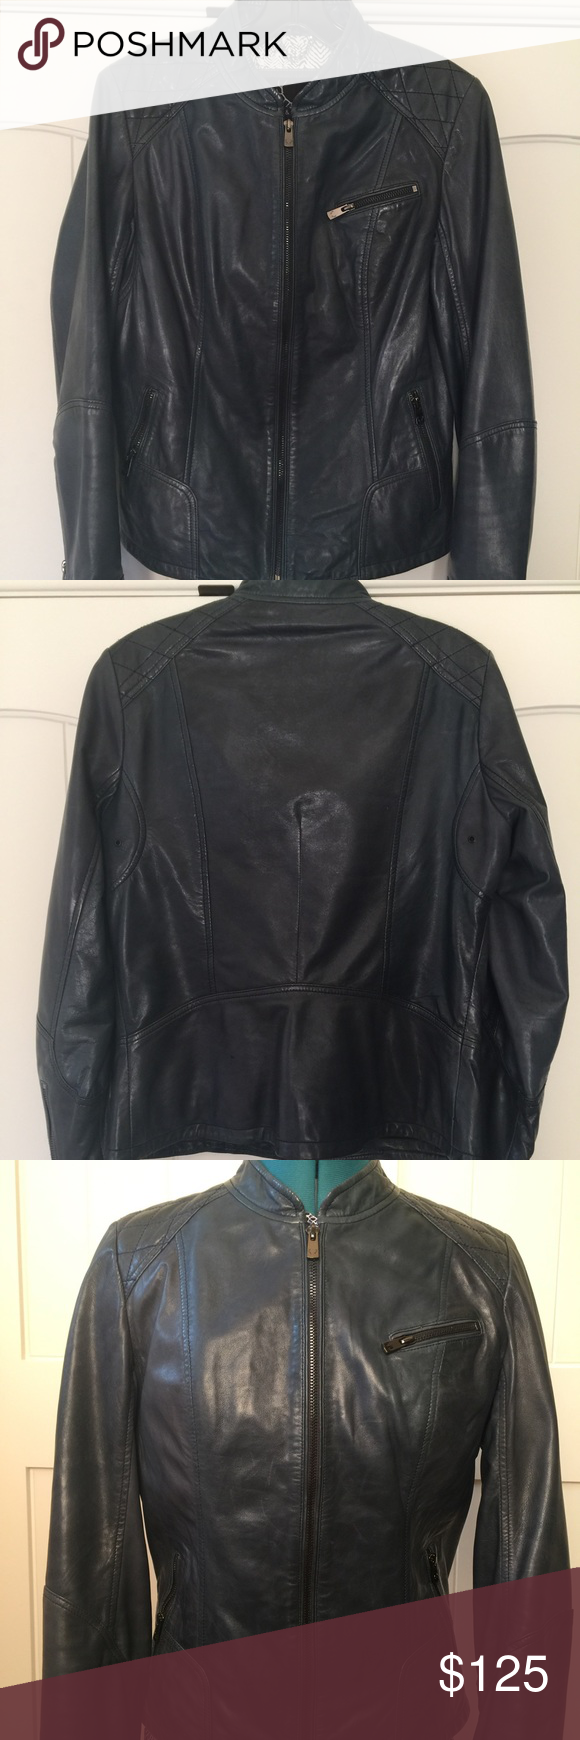 Leather jacket very